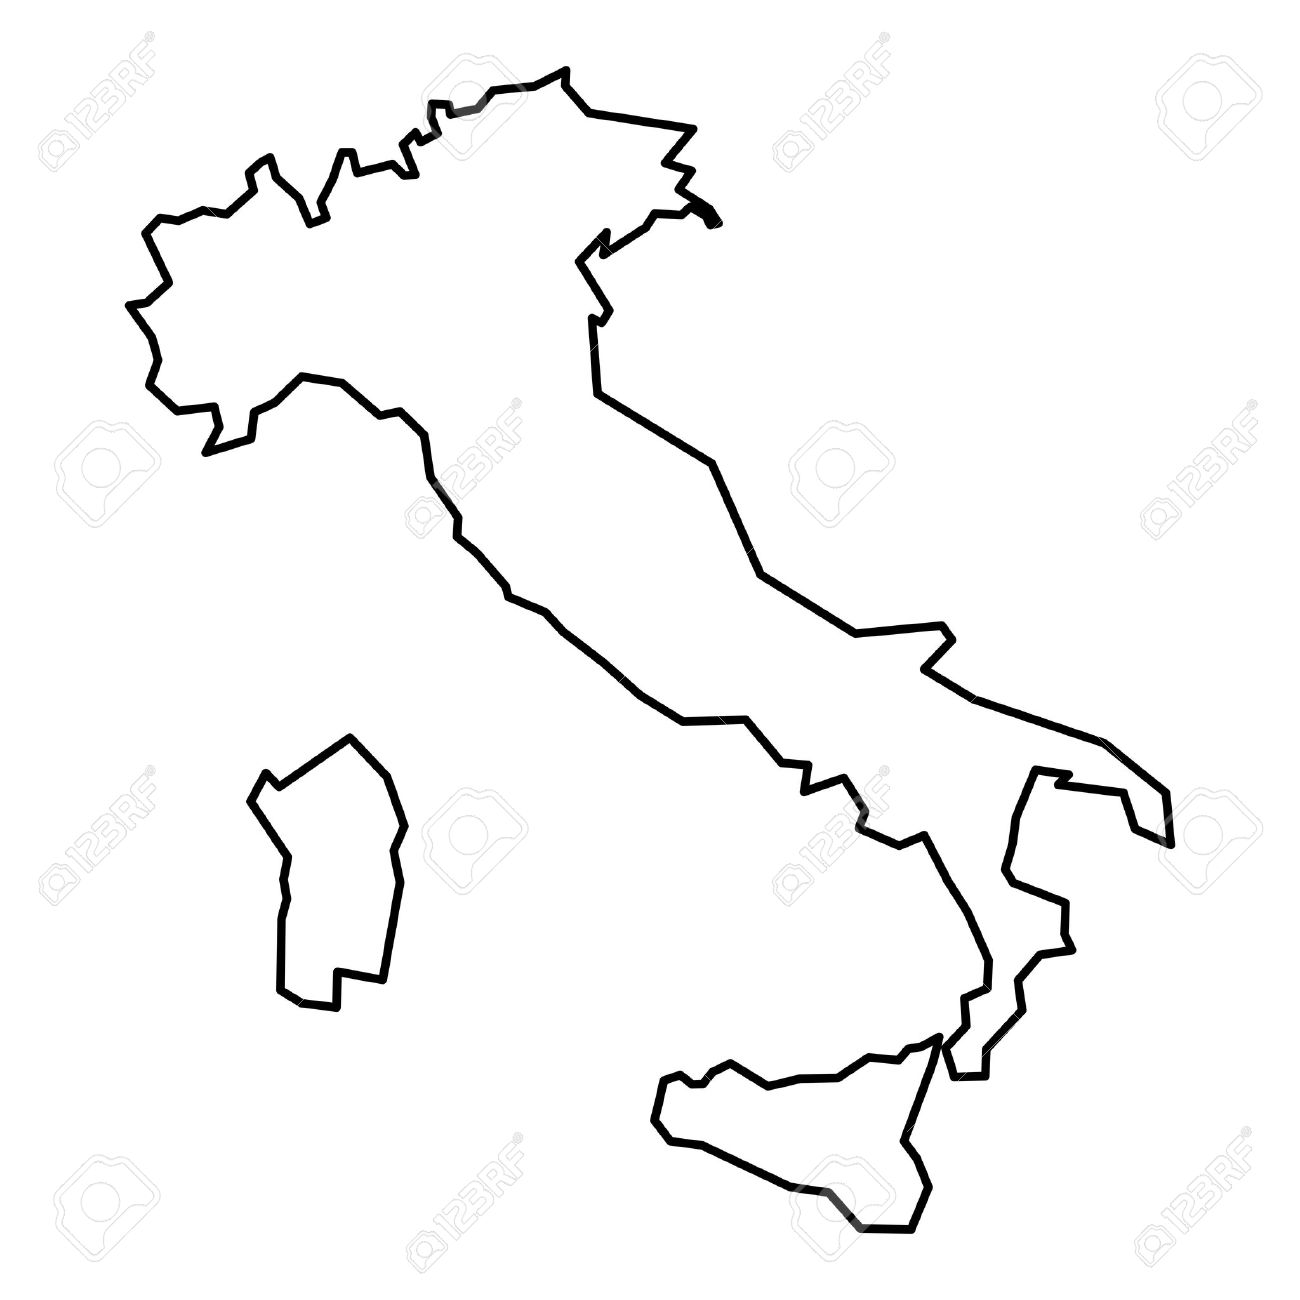 Simple Map Of Italy.Simple Contour Map Of Italy Black Outline Map Isolated On White